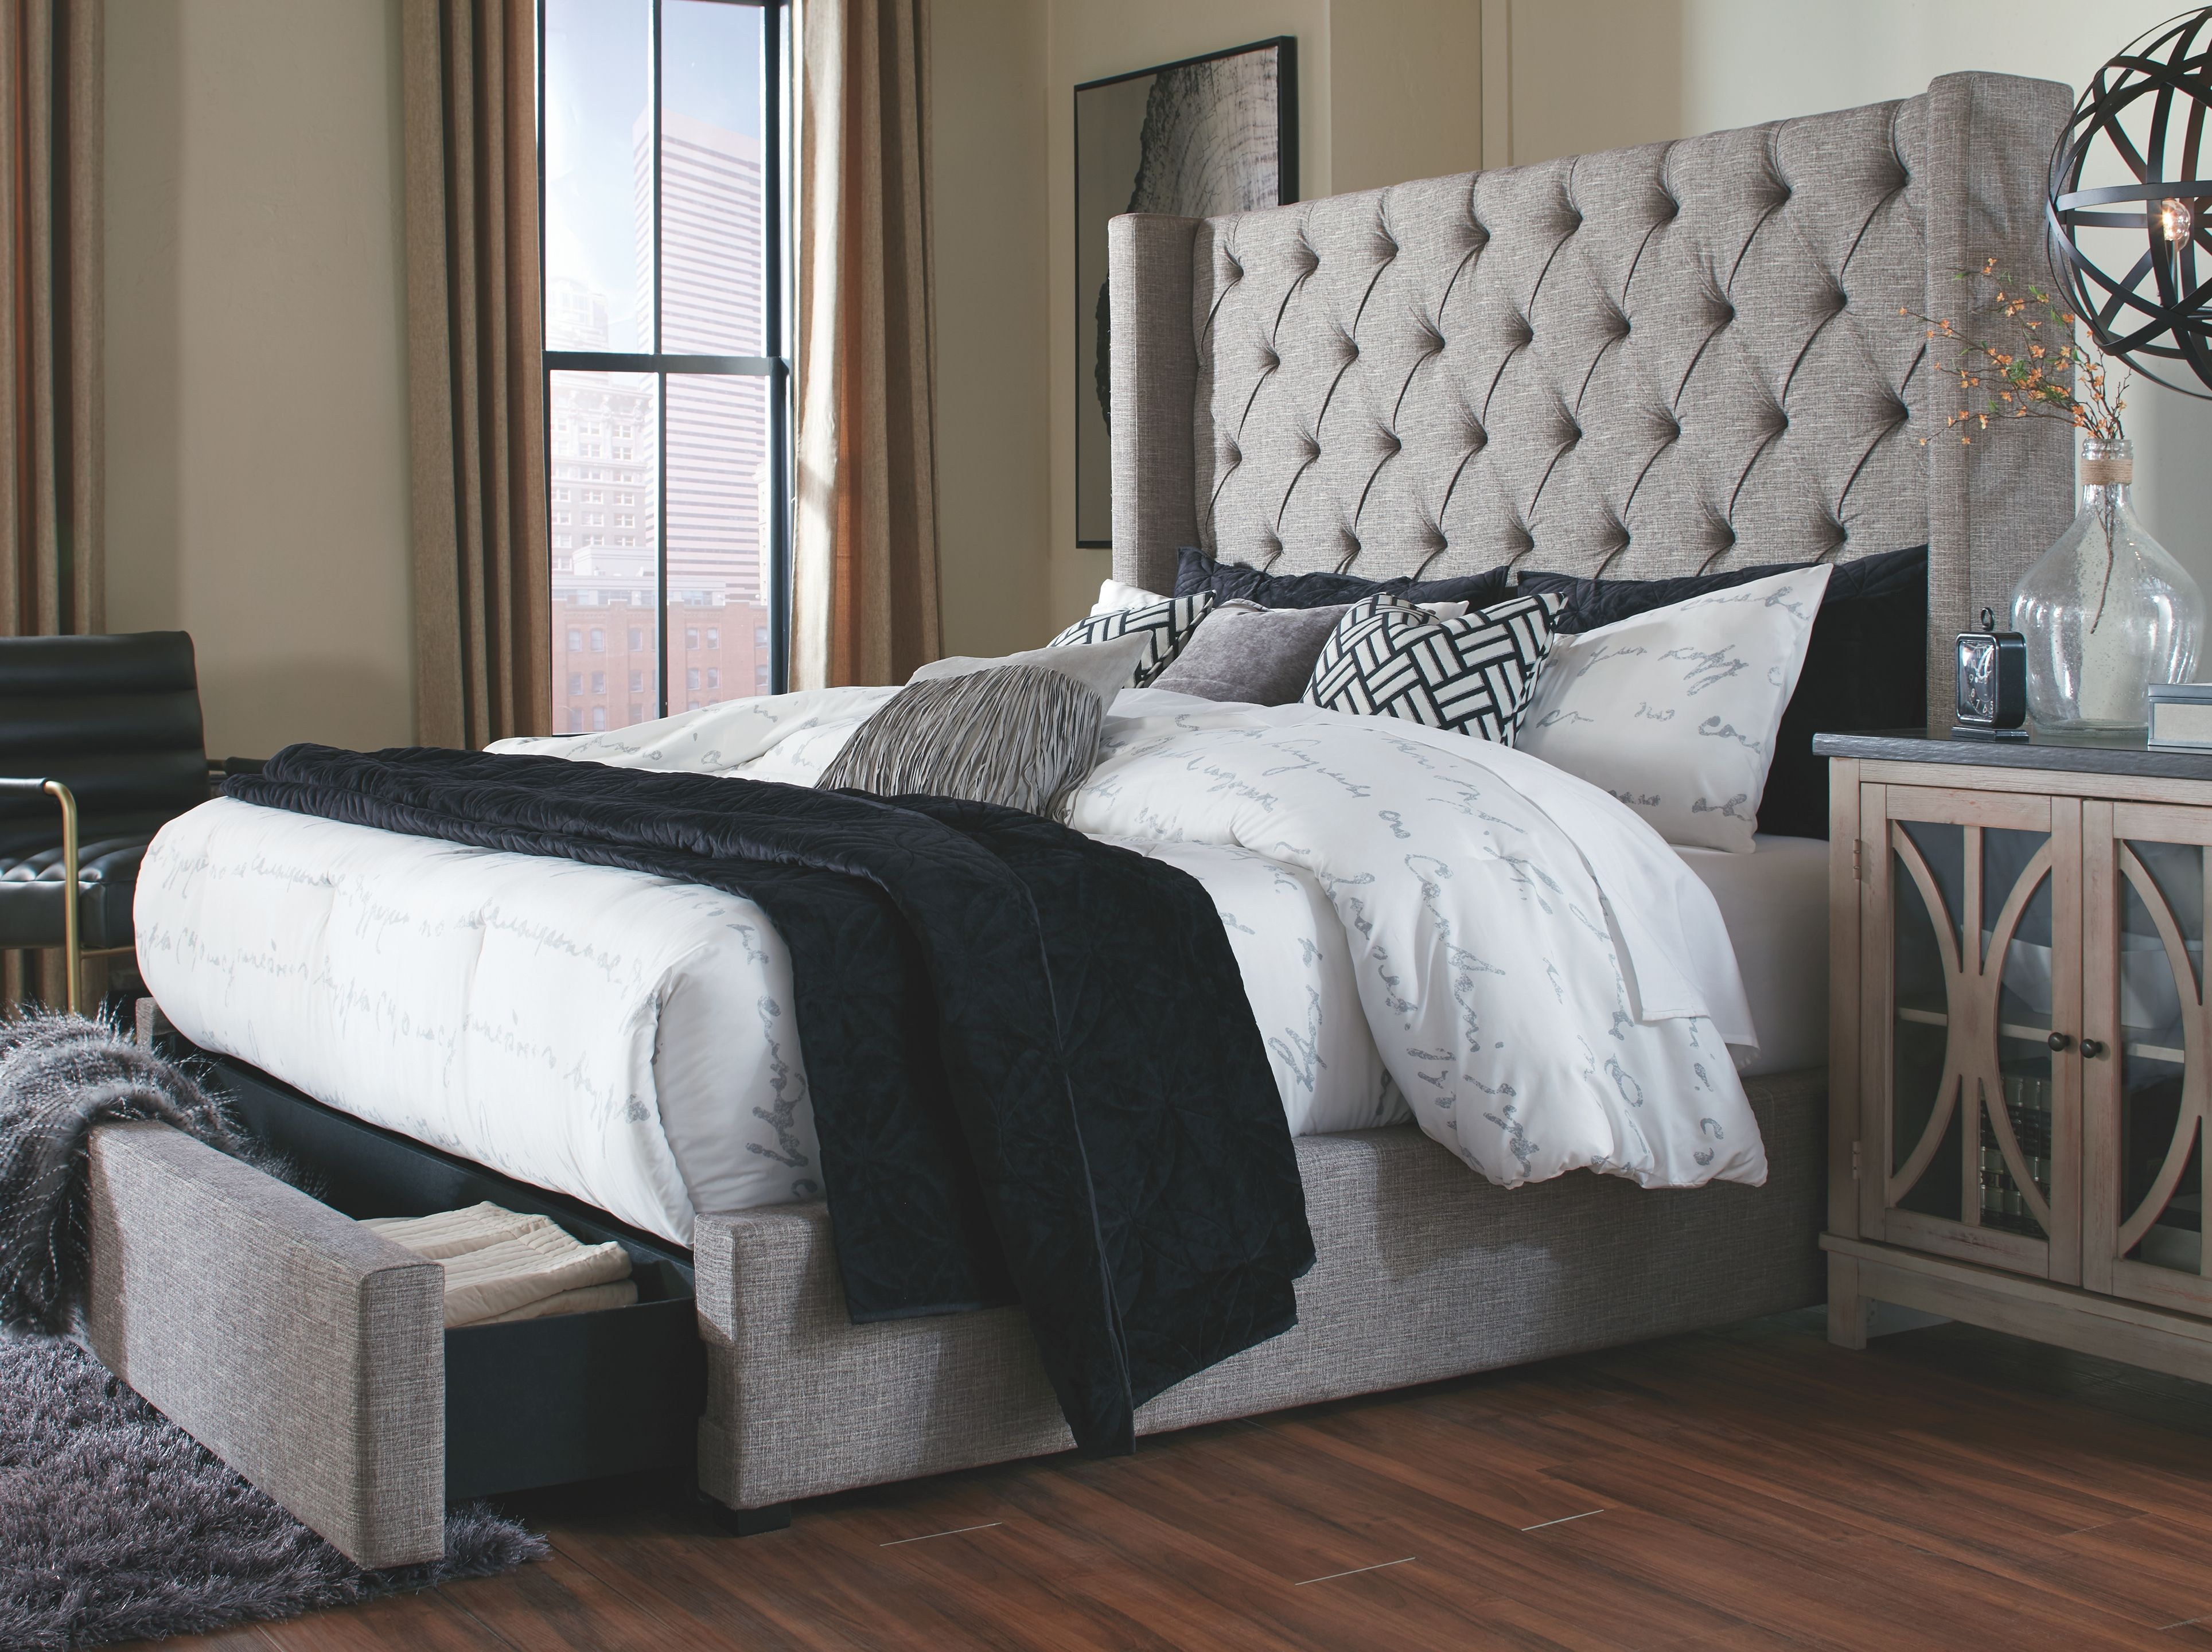 Sorinella California King Upholstered Bed with Storage